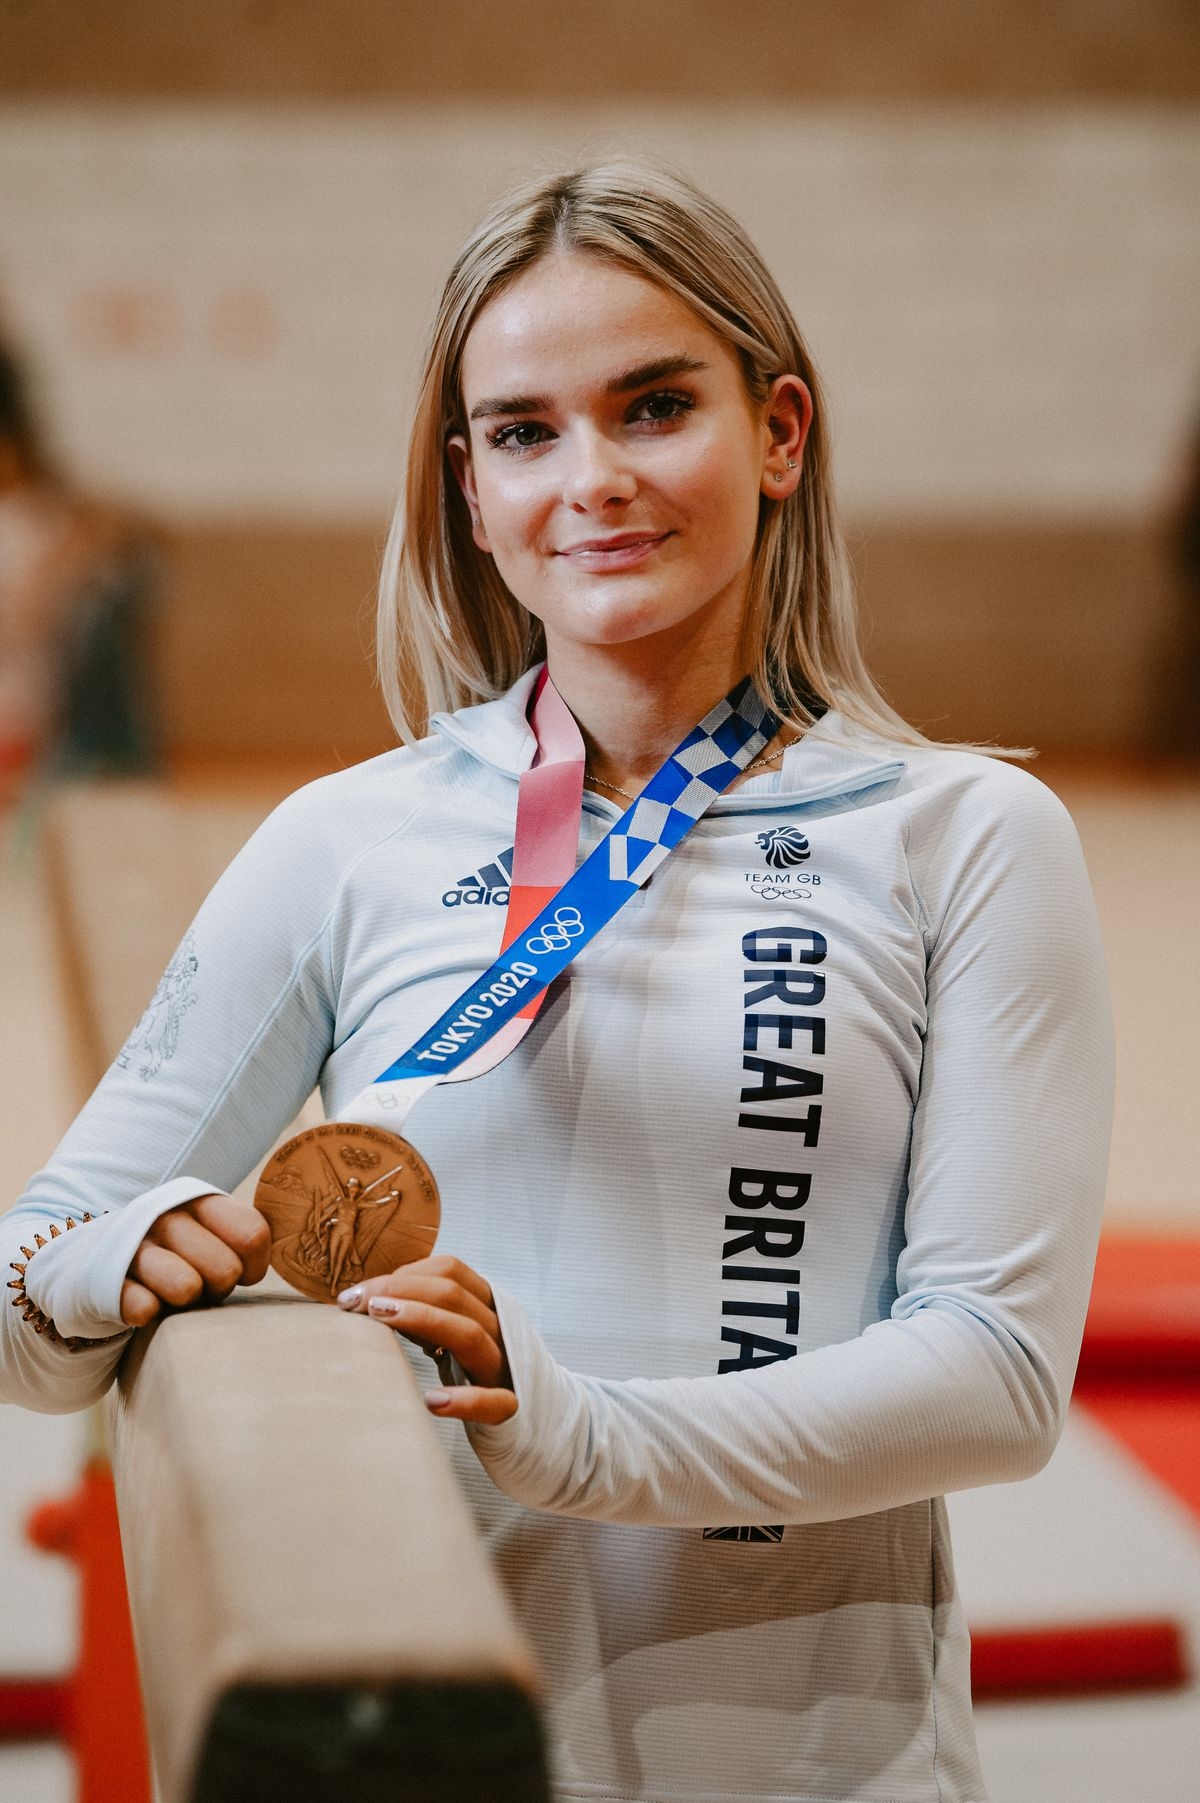 Olympian Alice Kinsella receives a welcome home party at Park Wrekin Gymnastics Club in Wellington, after returning home from Tokyo 2020 Olympics